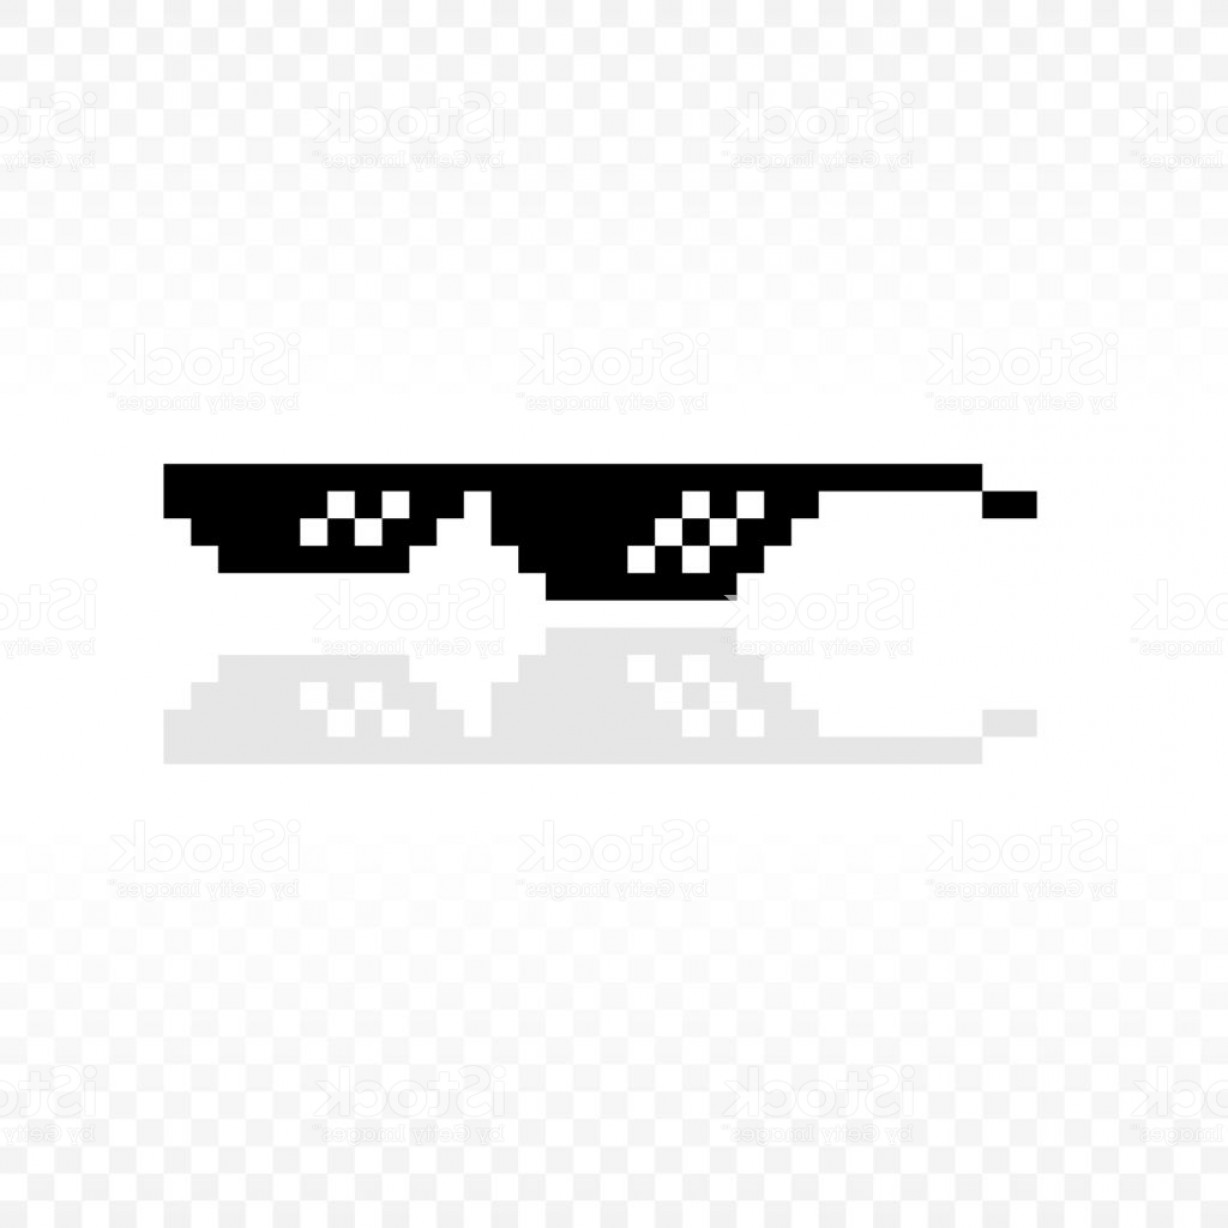 Art Stencil Thug Vector: Meme Glasses Or Thug Life Or Like A Boss Or Deal With It Gm